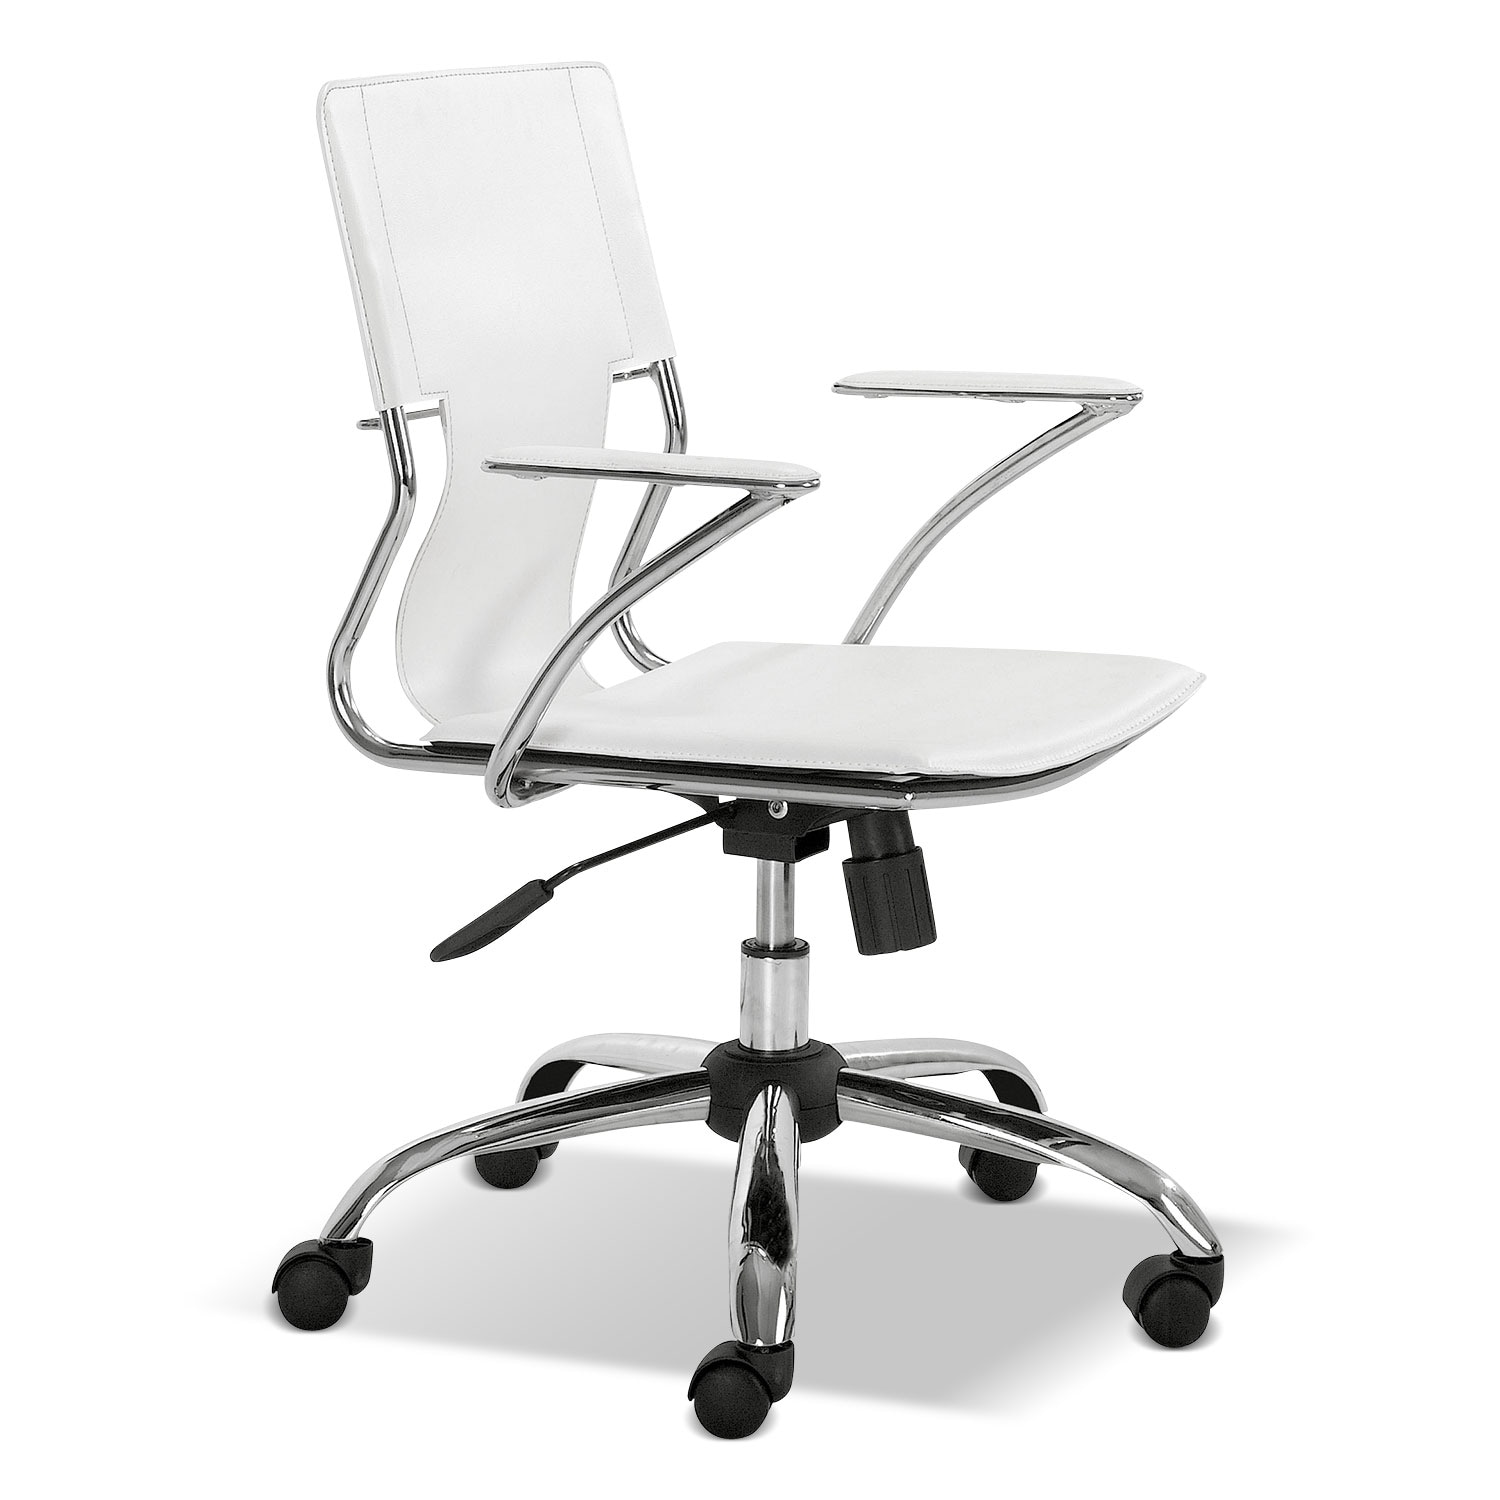 Home Office Furniture - Crowley Office Arm Chair - White